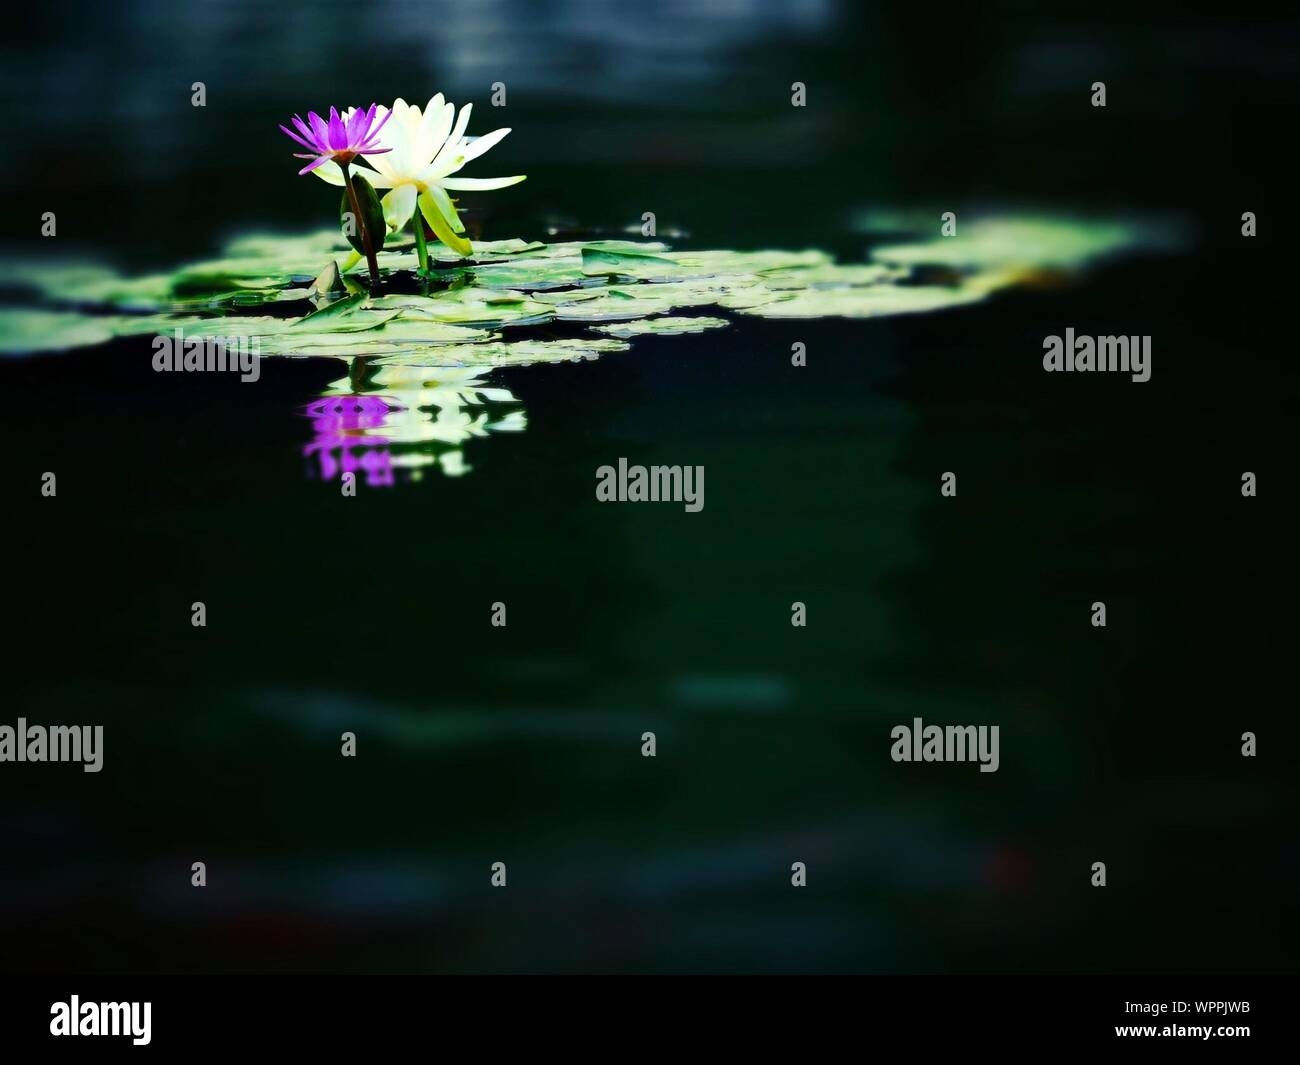 Water Lilies Blooming In Lake Stock Photo